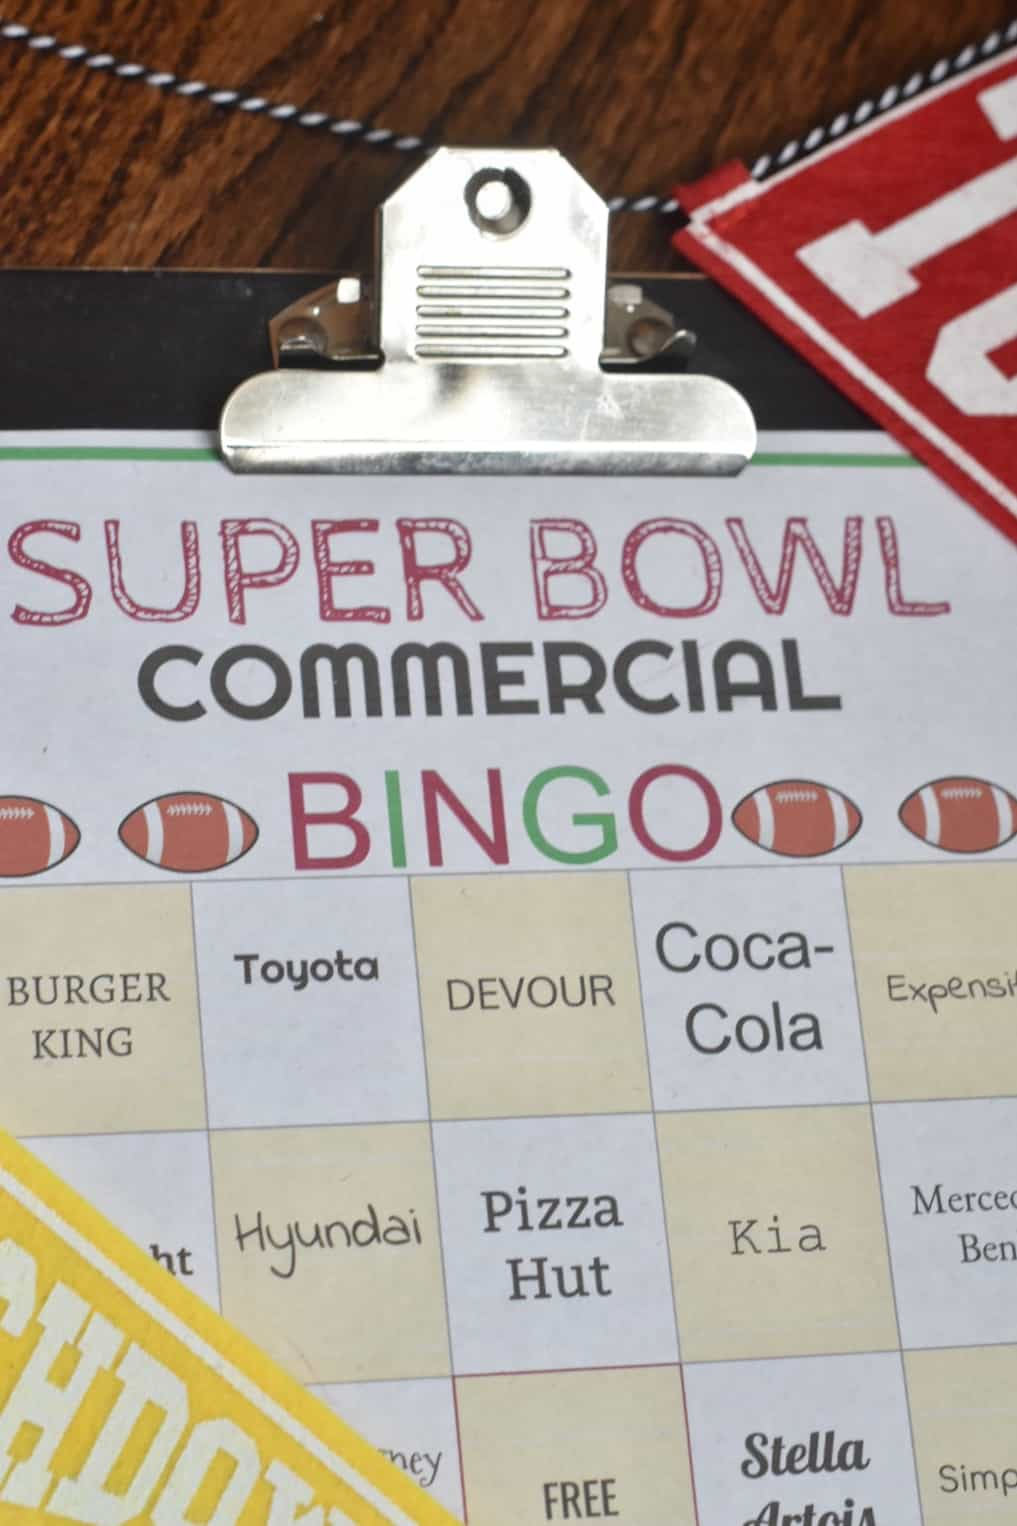 photo relating to Printable Super Bowl Bingo Cards named Tremendous Bowl 2019 BINGO Playing cards No cost Printable - Espresso